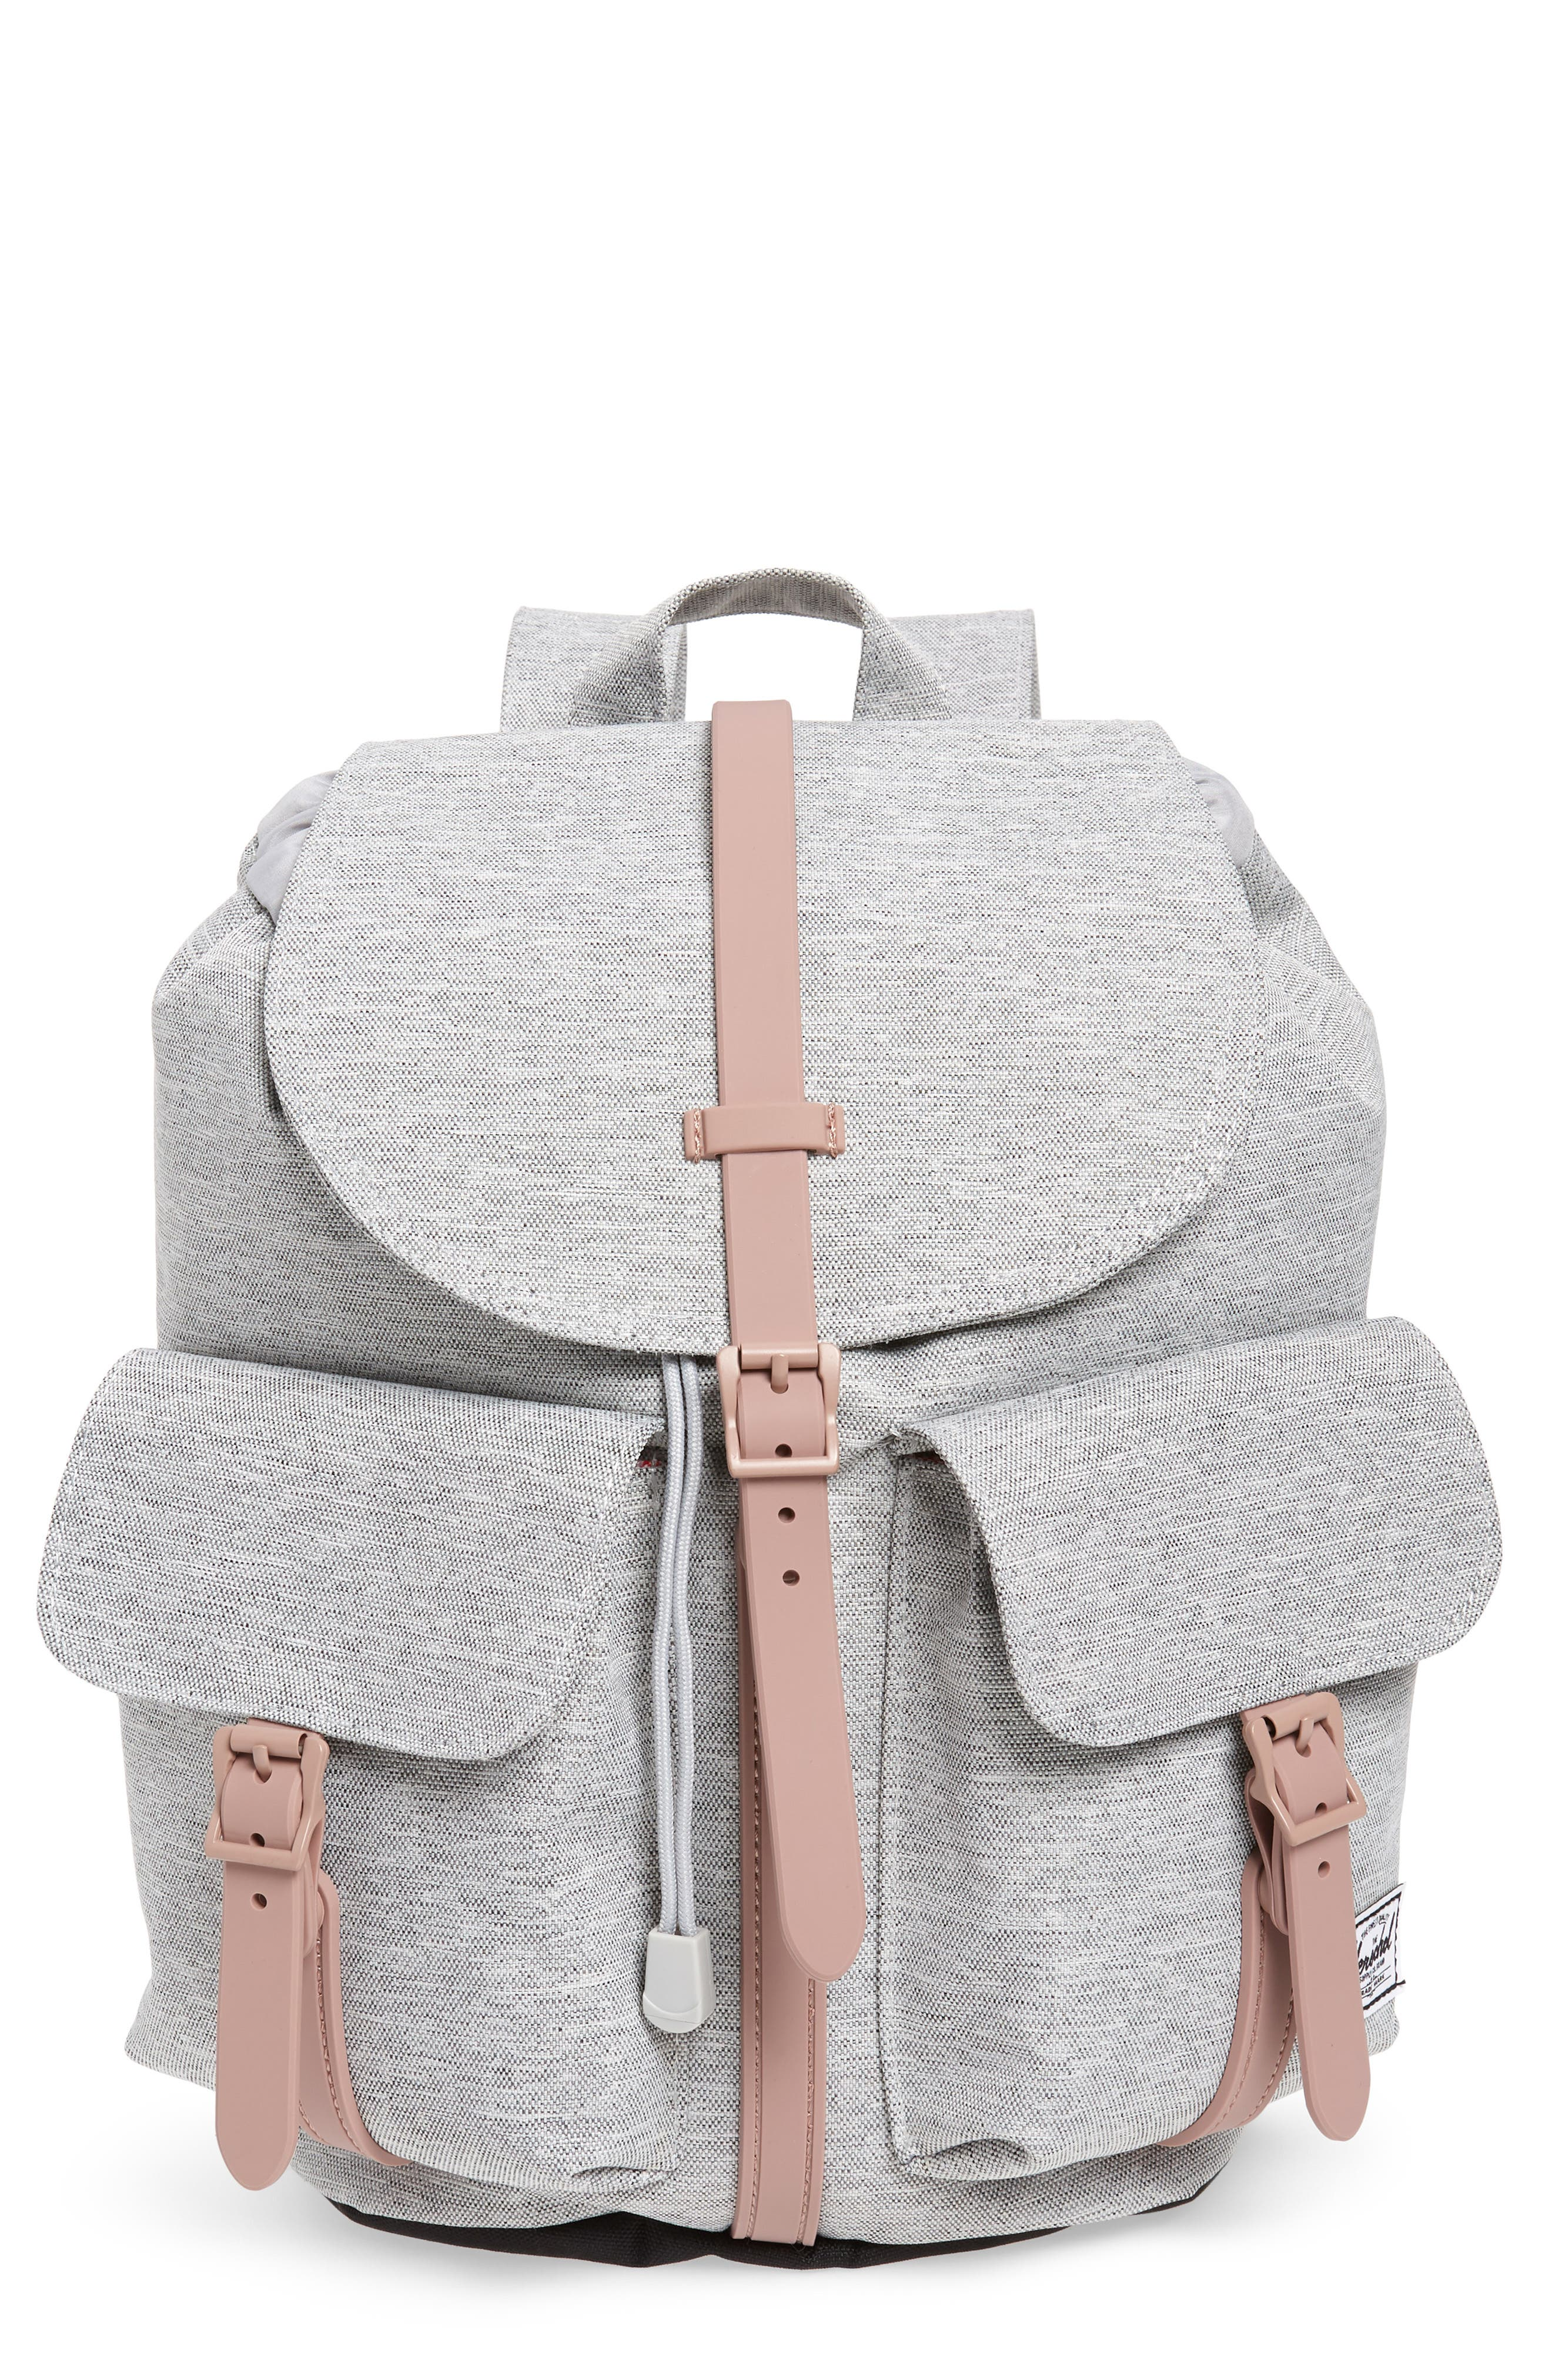 X-Small Dawson Backpack,                         Main,                         color, LIGHT GREY/ ASH ROSE/ BLACK